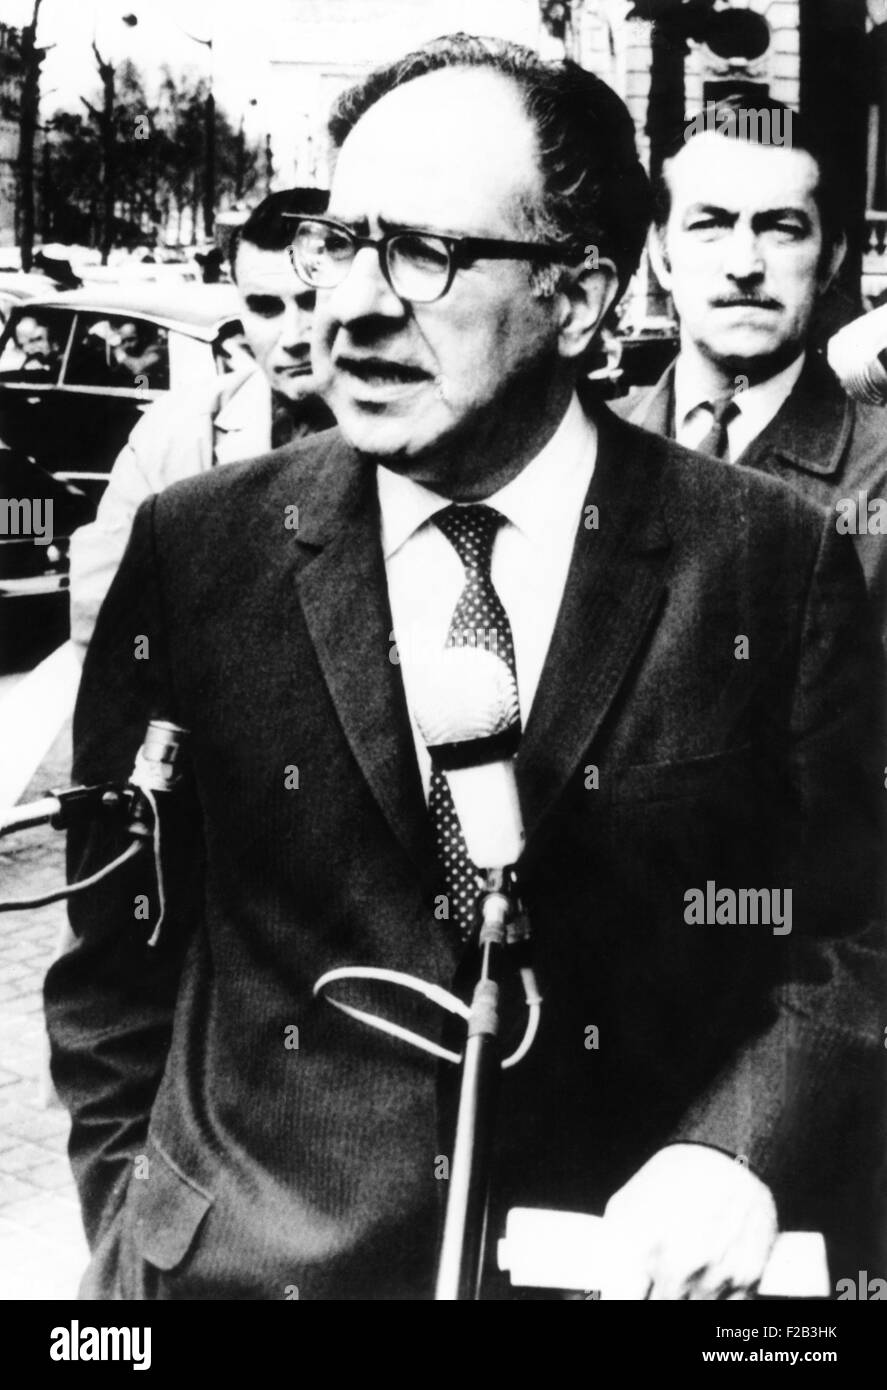 Philip Habib, American career diplomat, May 4, 1970. He was head of the U.S. delegation to the Paris Peace Talks - Stock Image